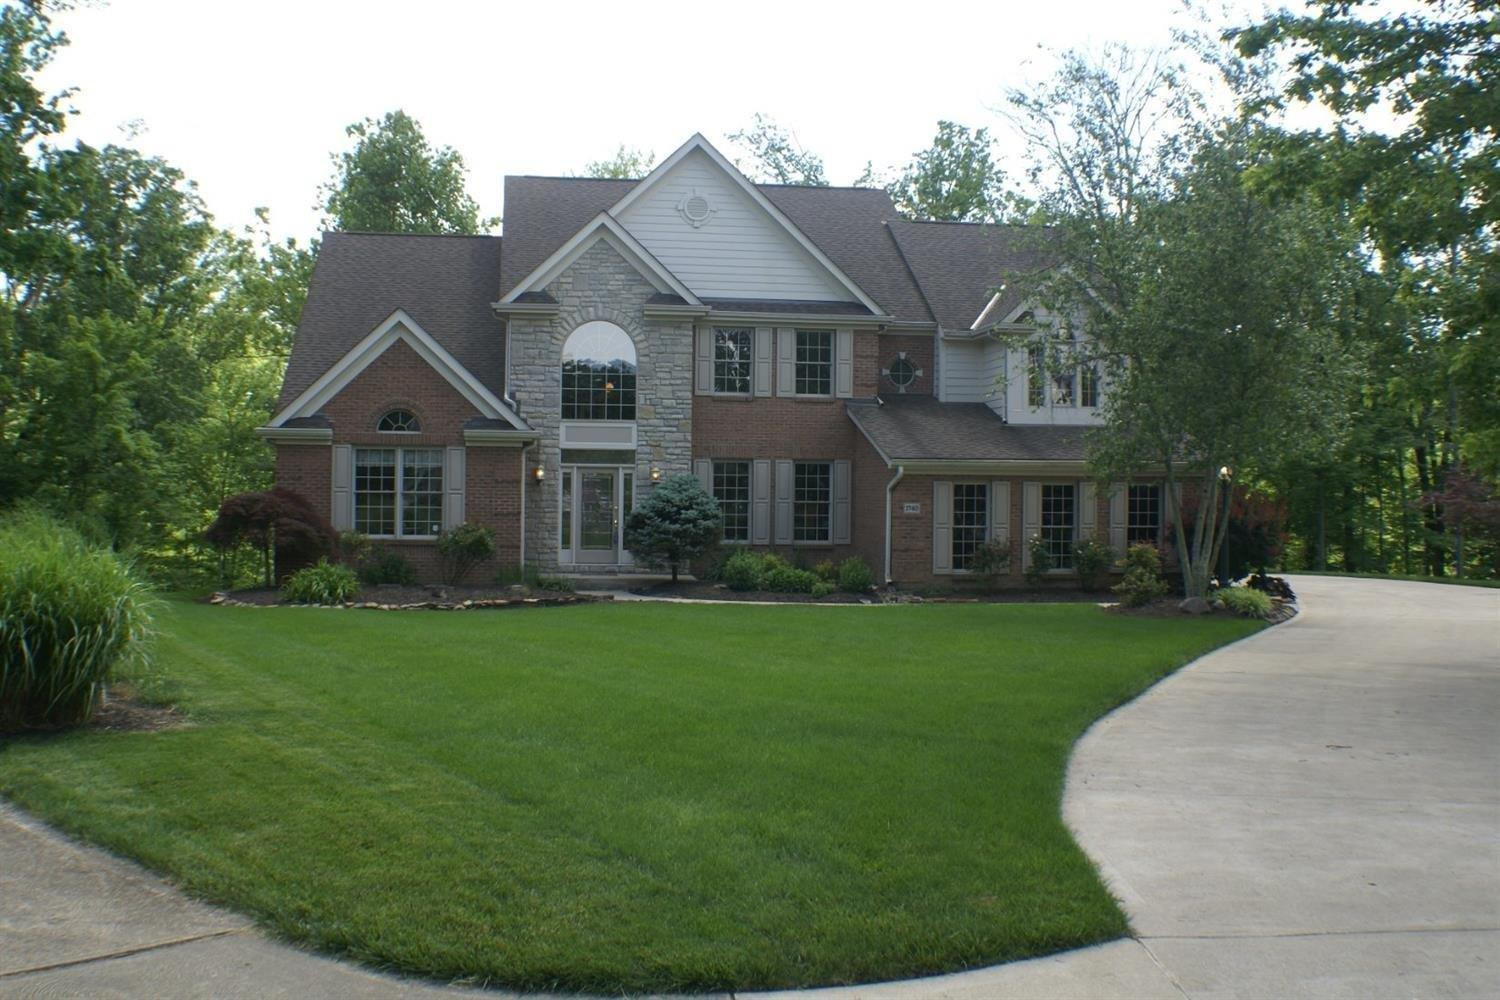 1740 Cottontail Drive, Miami Twp, OH 45150